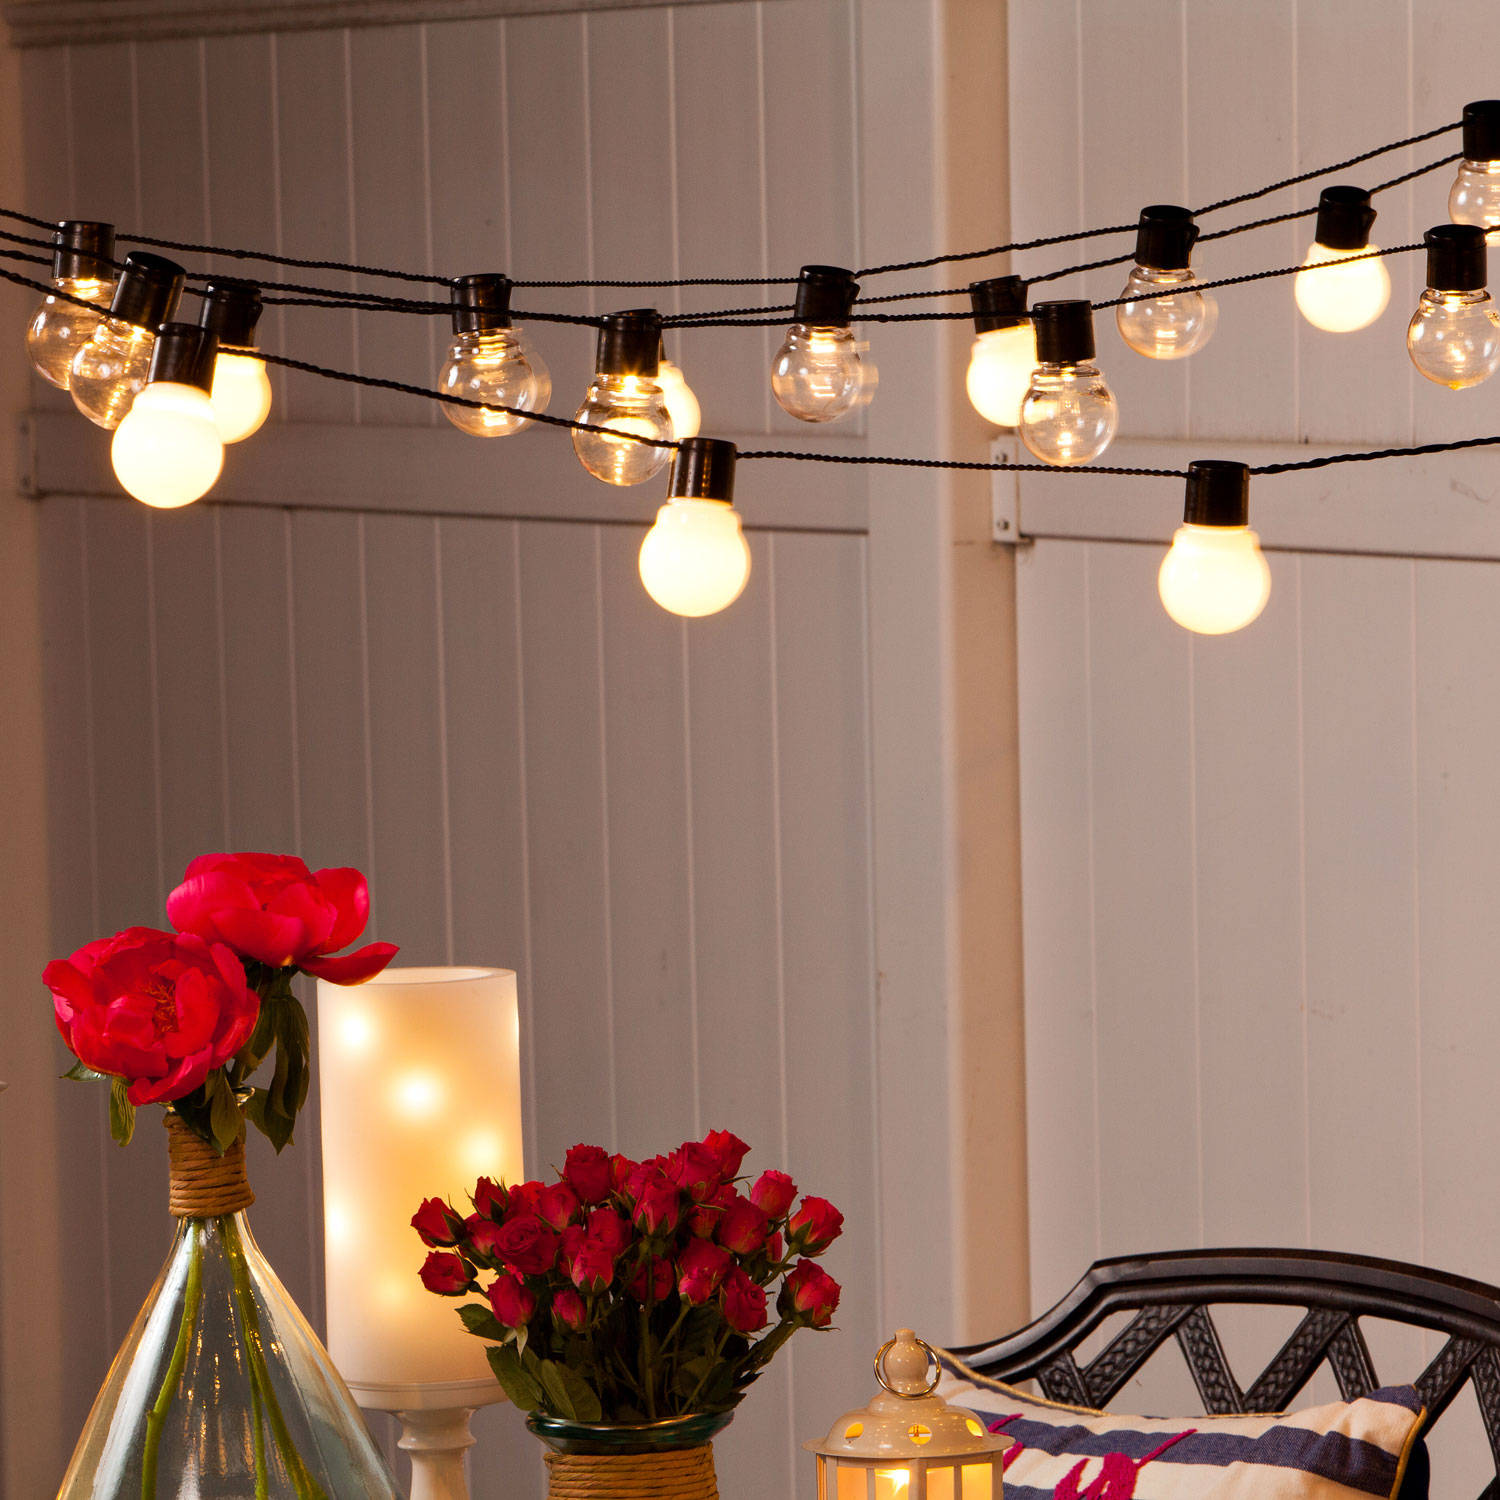 string lights decorative string lights white globe connectable plug in festoon. Black Bedroom Furniture Sets. Home Design Ideas